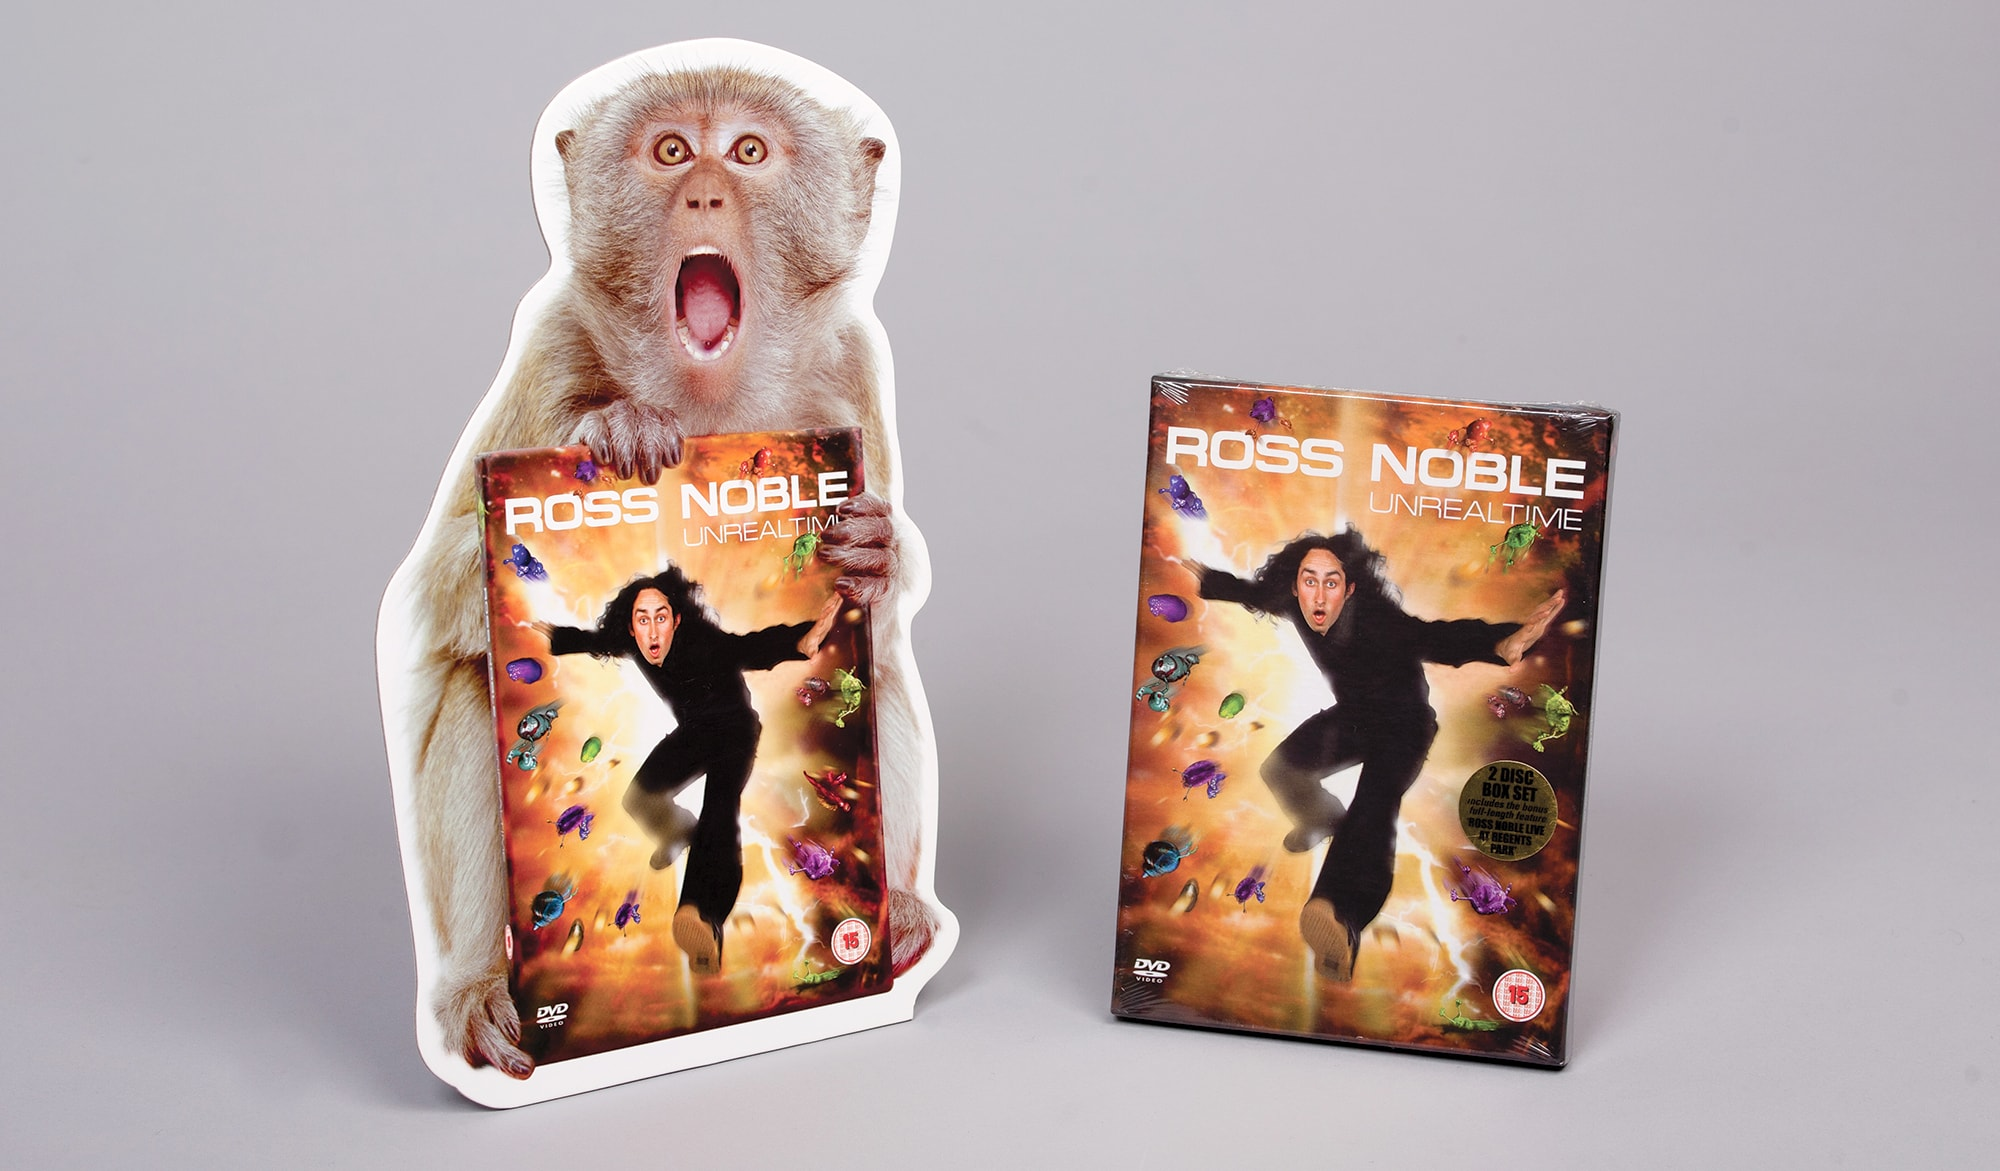 Ross Noble - Unrealtime DVD - POS